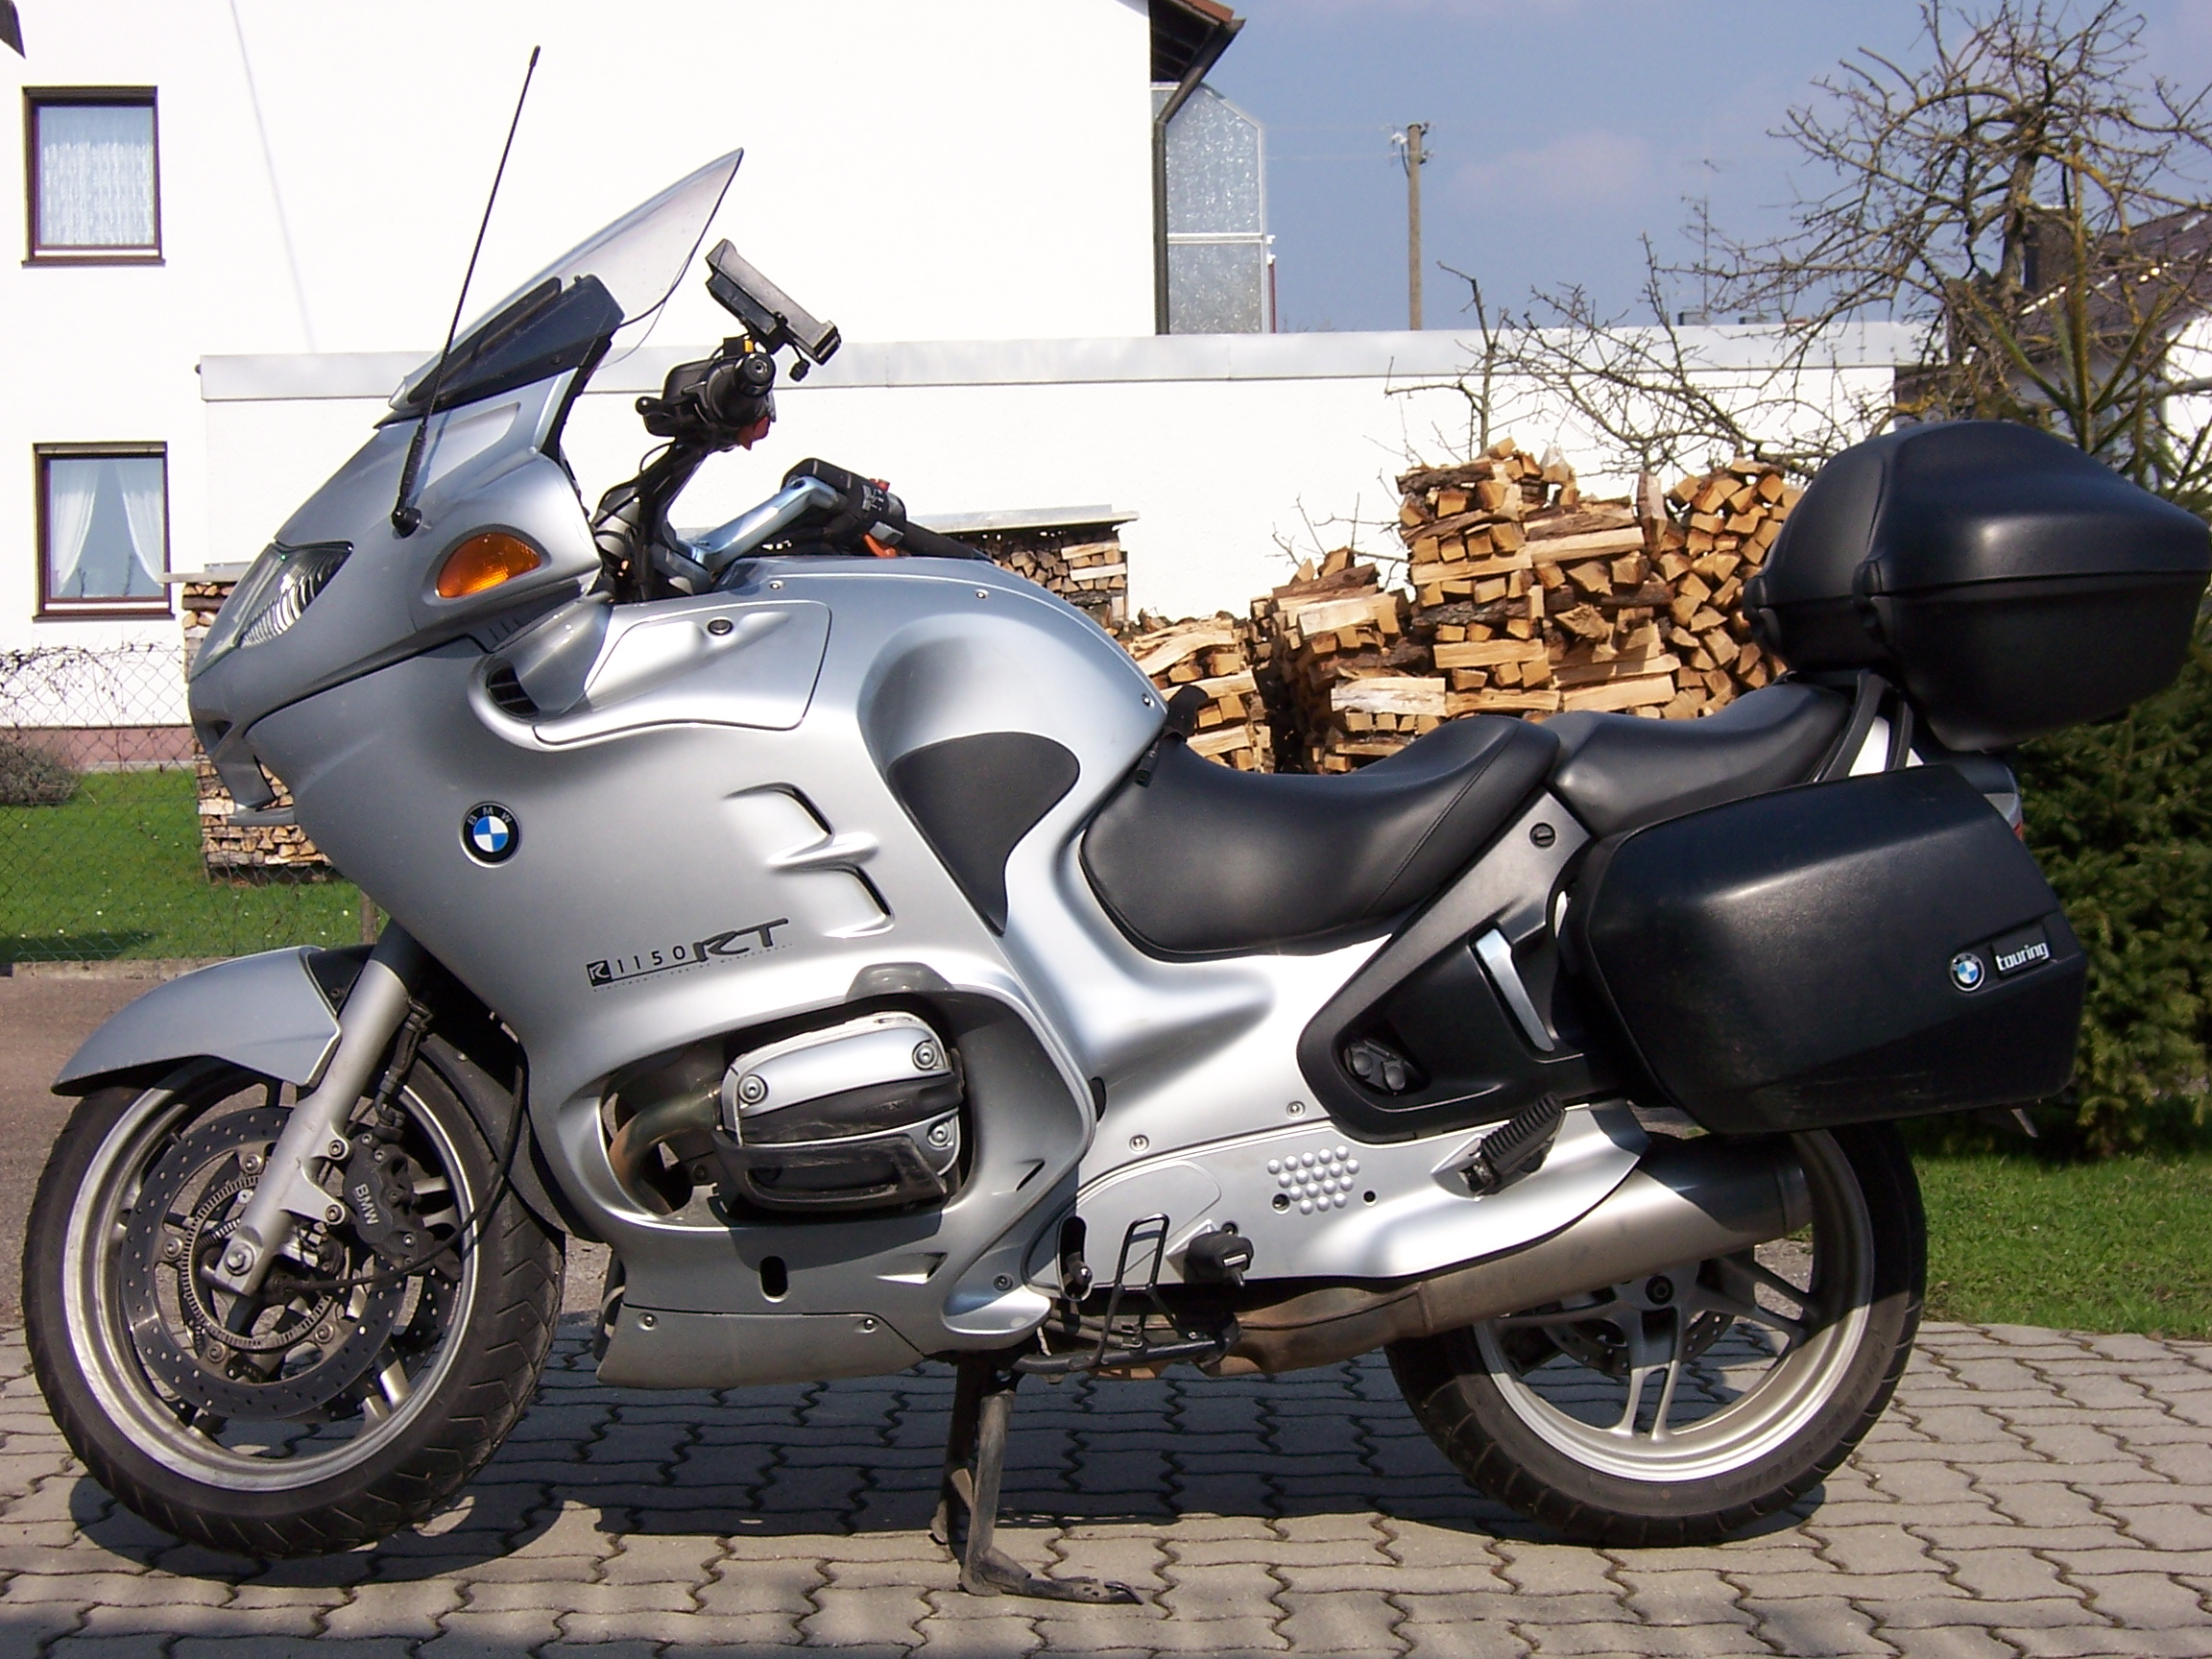 BMW R1150RT 2005 images #7634